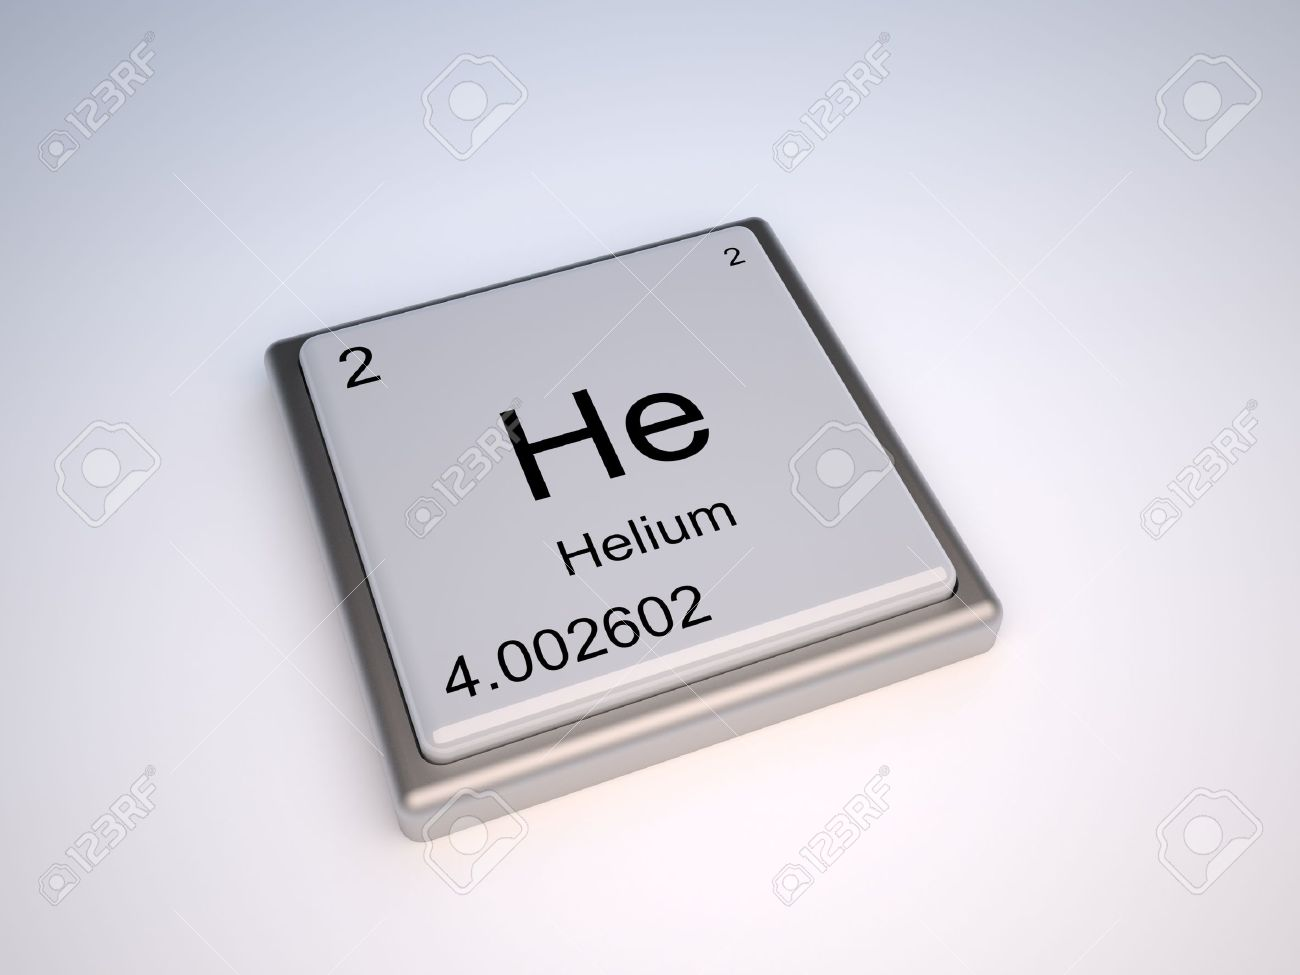 Helium chemical element of the periodic table with symbol he helium chemical element of the periodic table with symbol he iupac banque dimages gamestrikefo Images